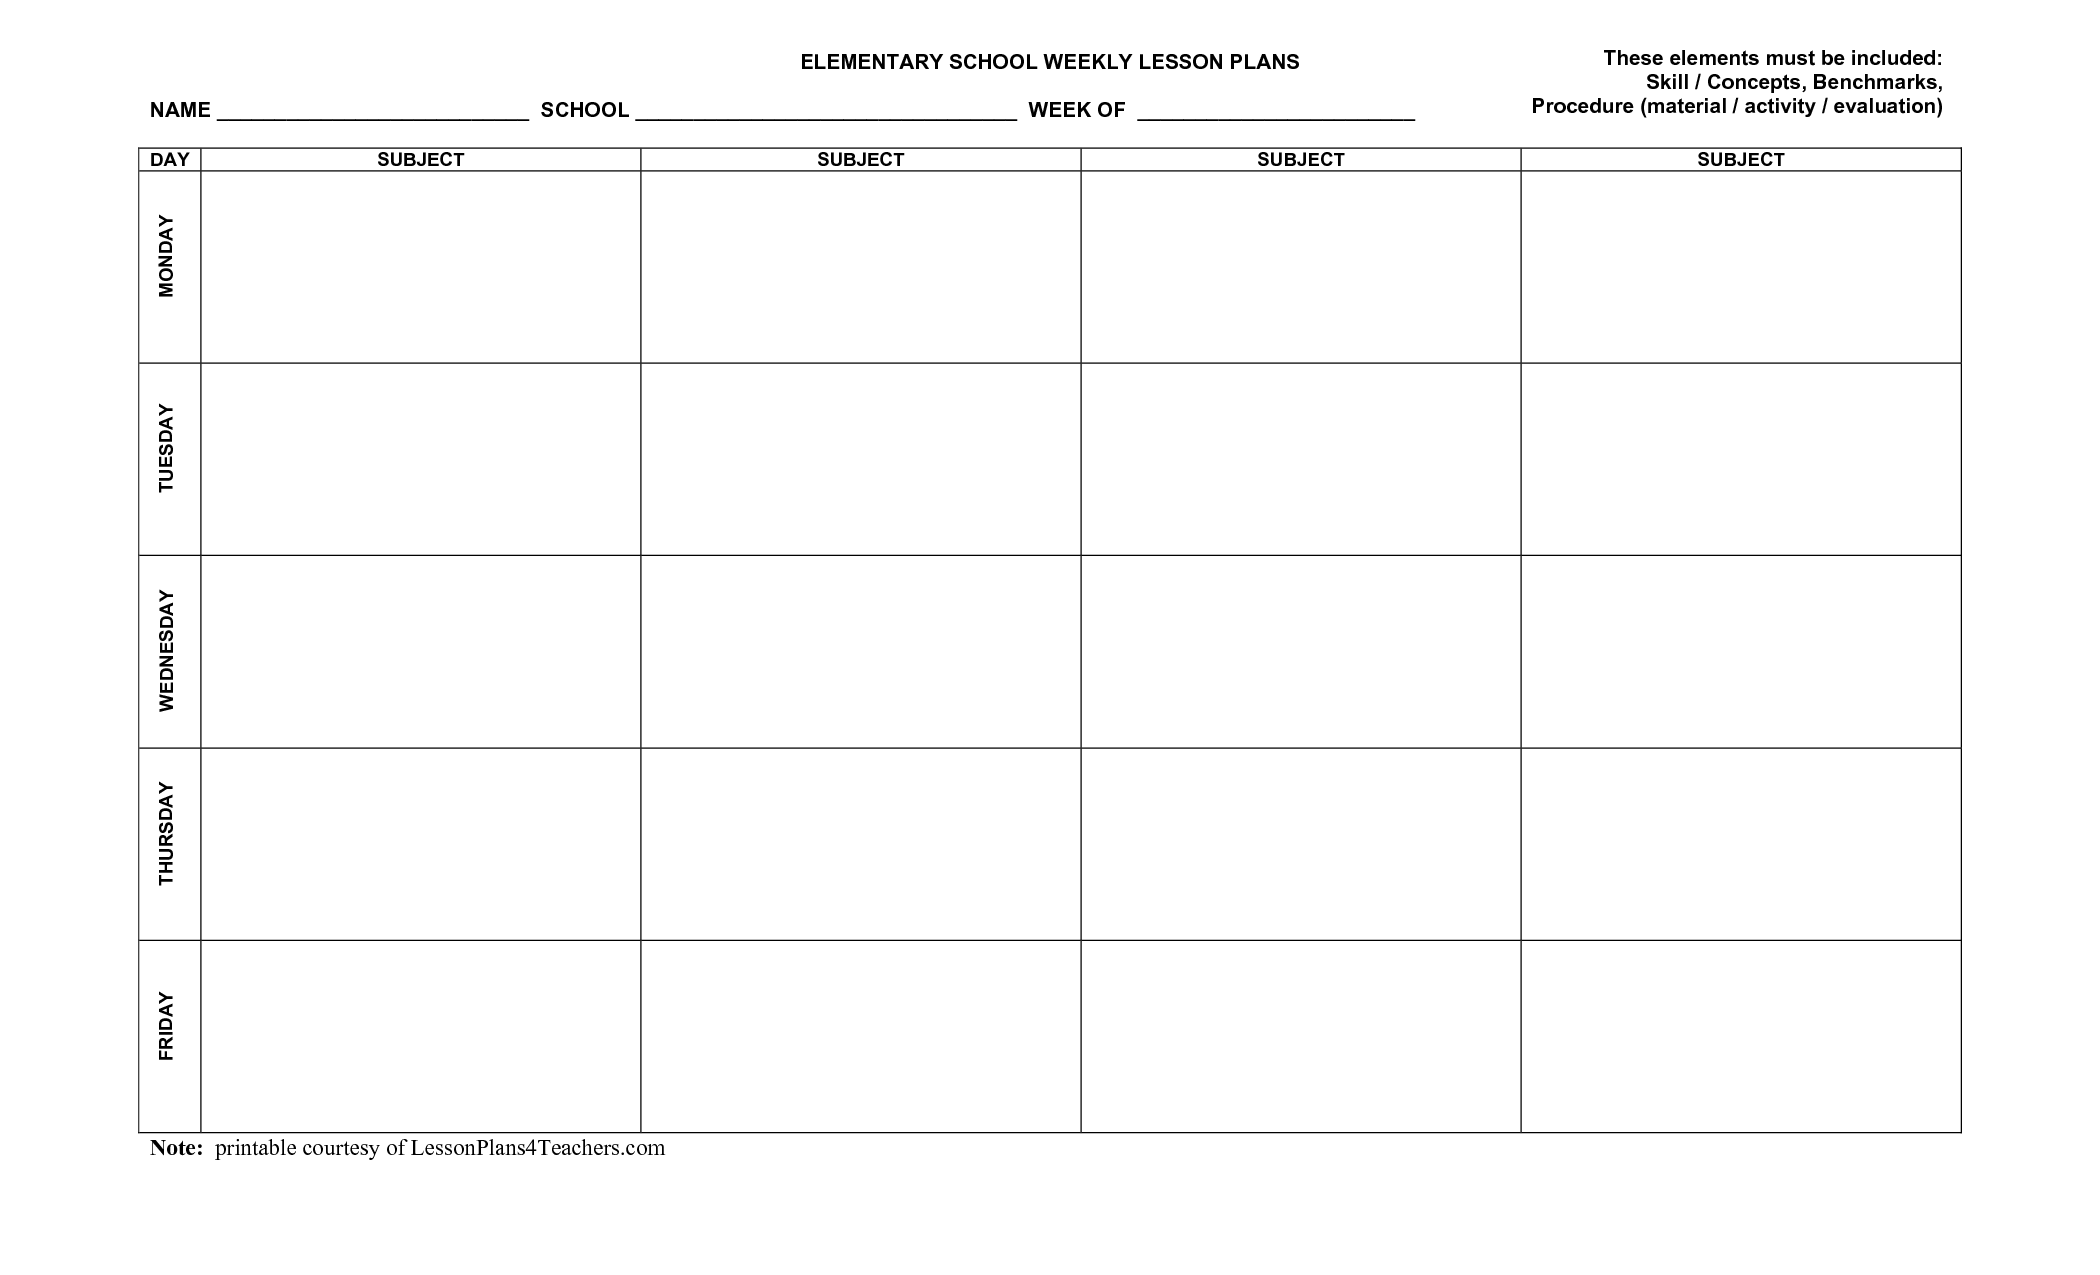 Blank Weekly Lesson Plan Templates School Stuff Pinterest - Teacher lesson plan template free